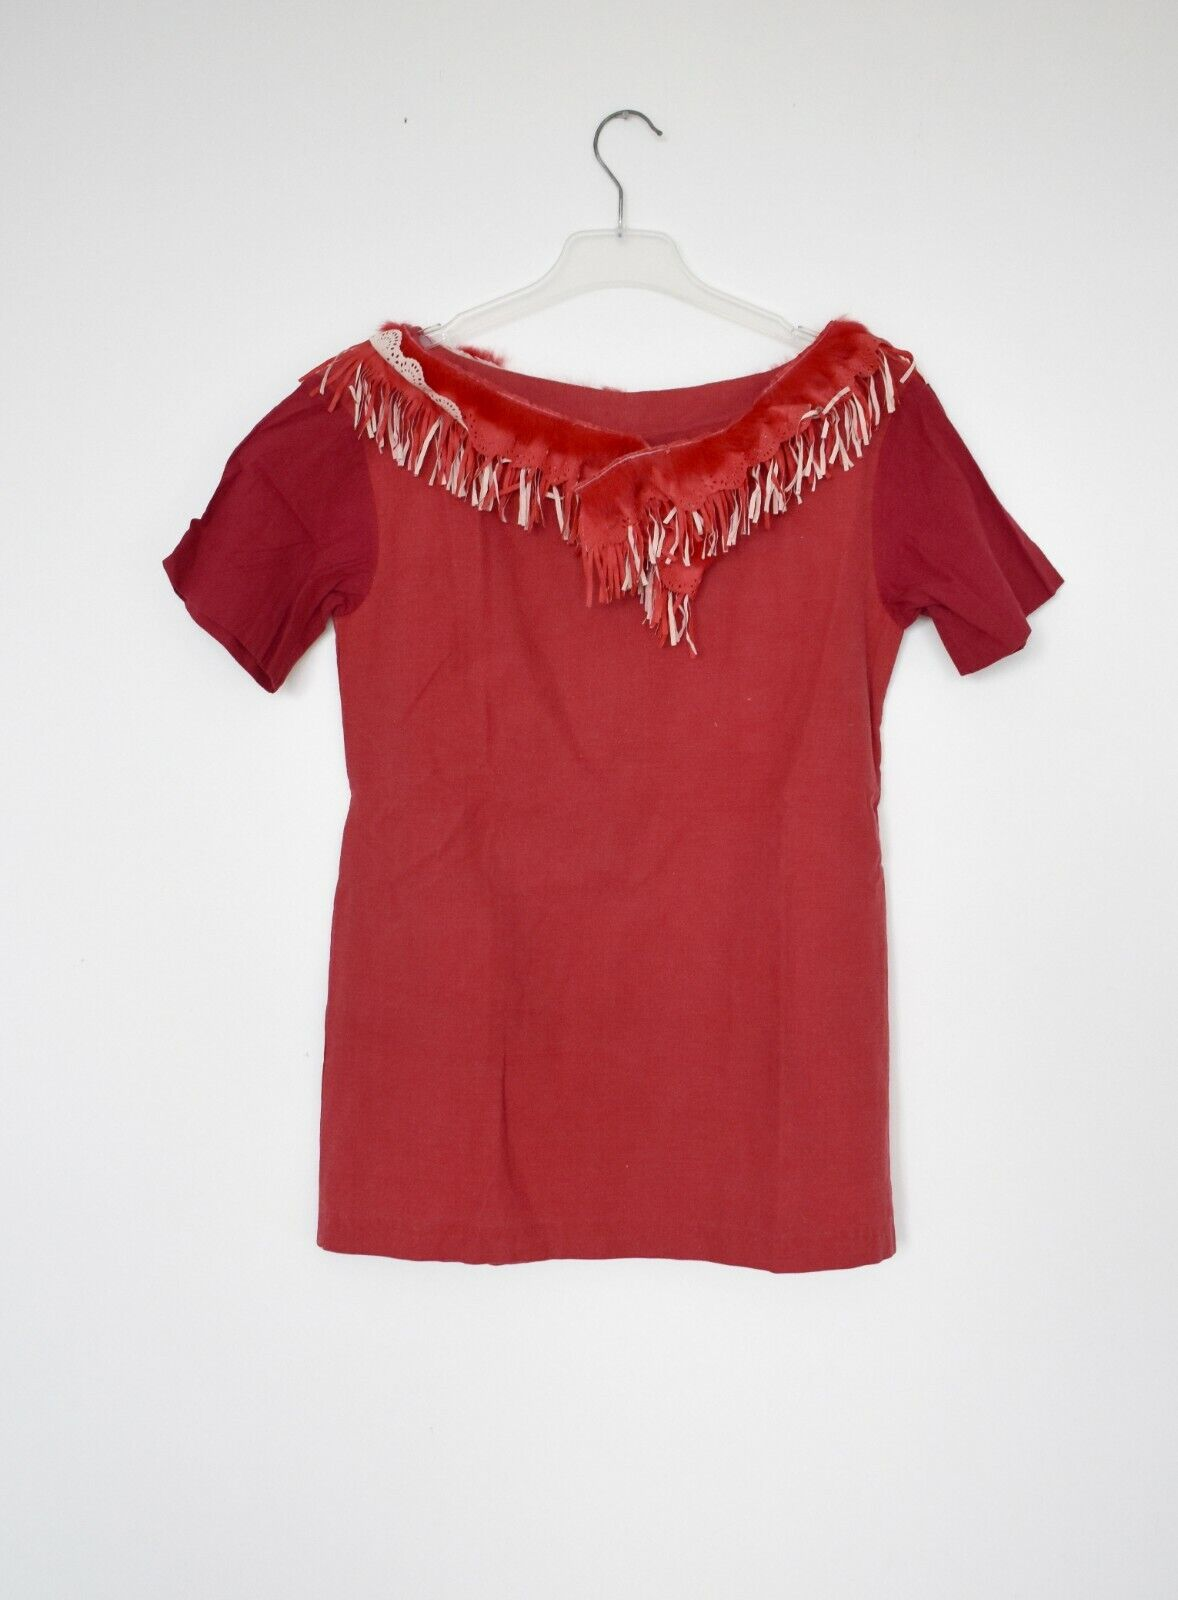 RED TOP fur fringe top MARNI style amazing cotton ausgefallenes top red mit fell